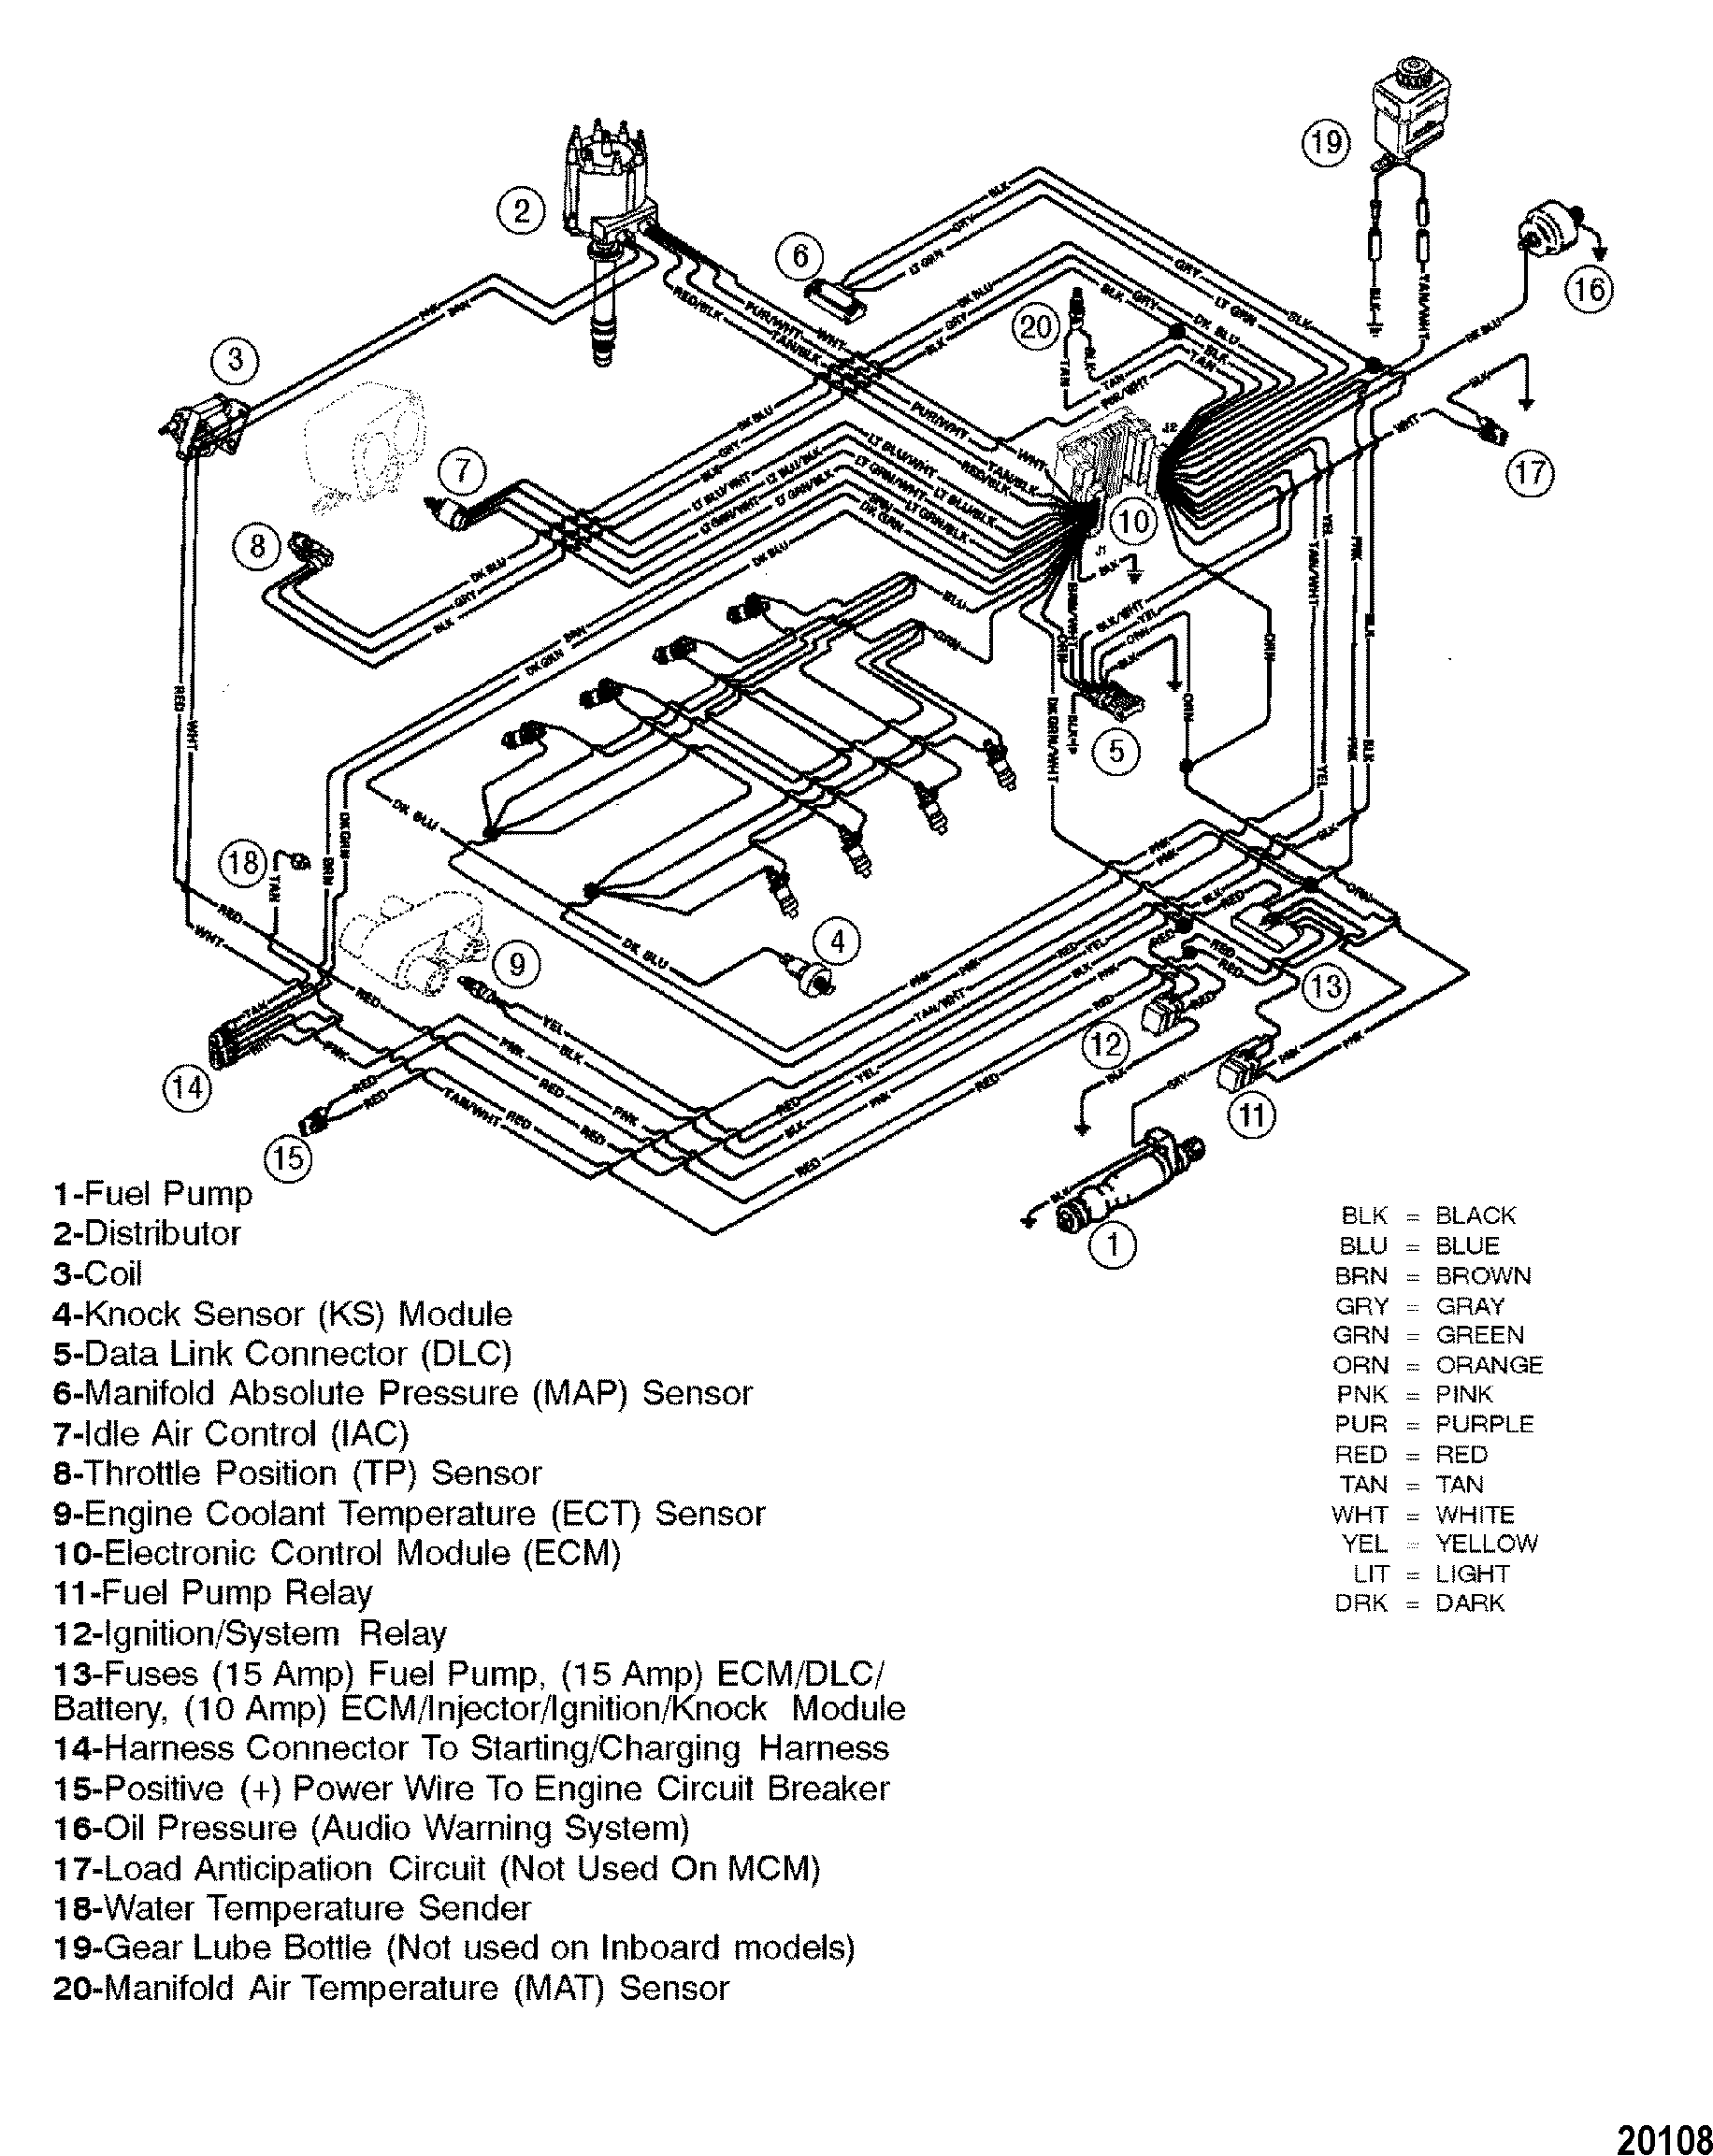 Mercruiser 5 7 Wiring Diagram : 29 Wiring Diagram Images